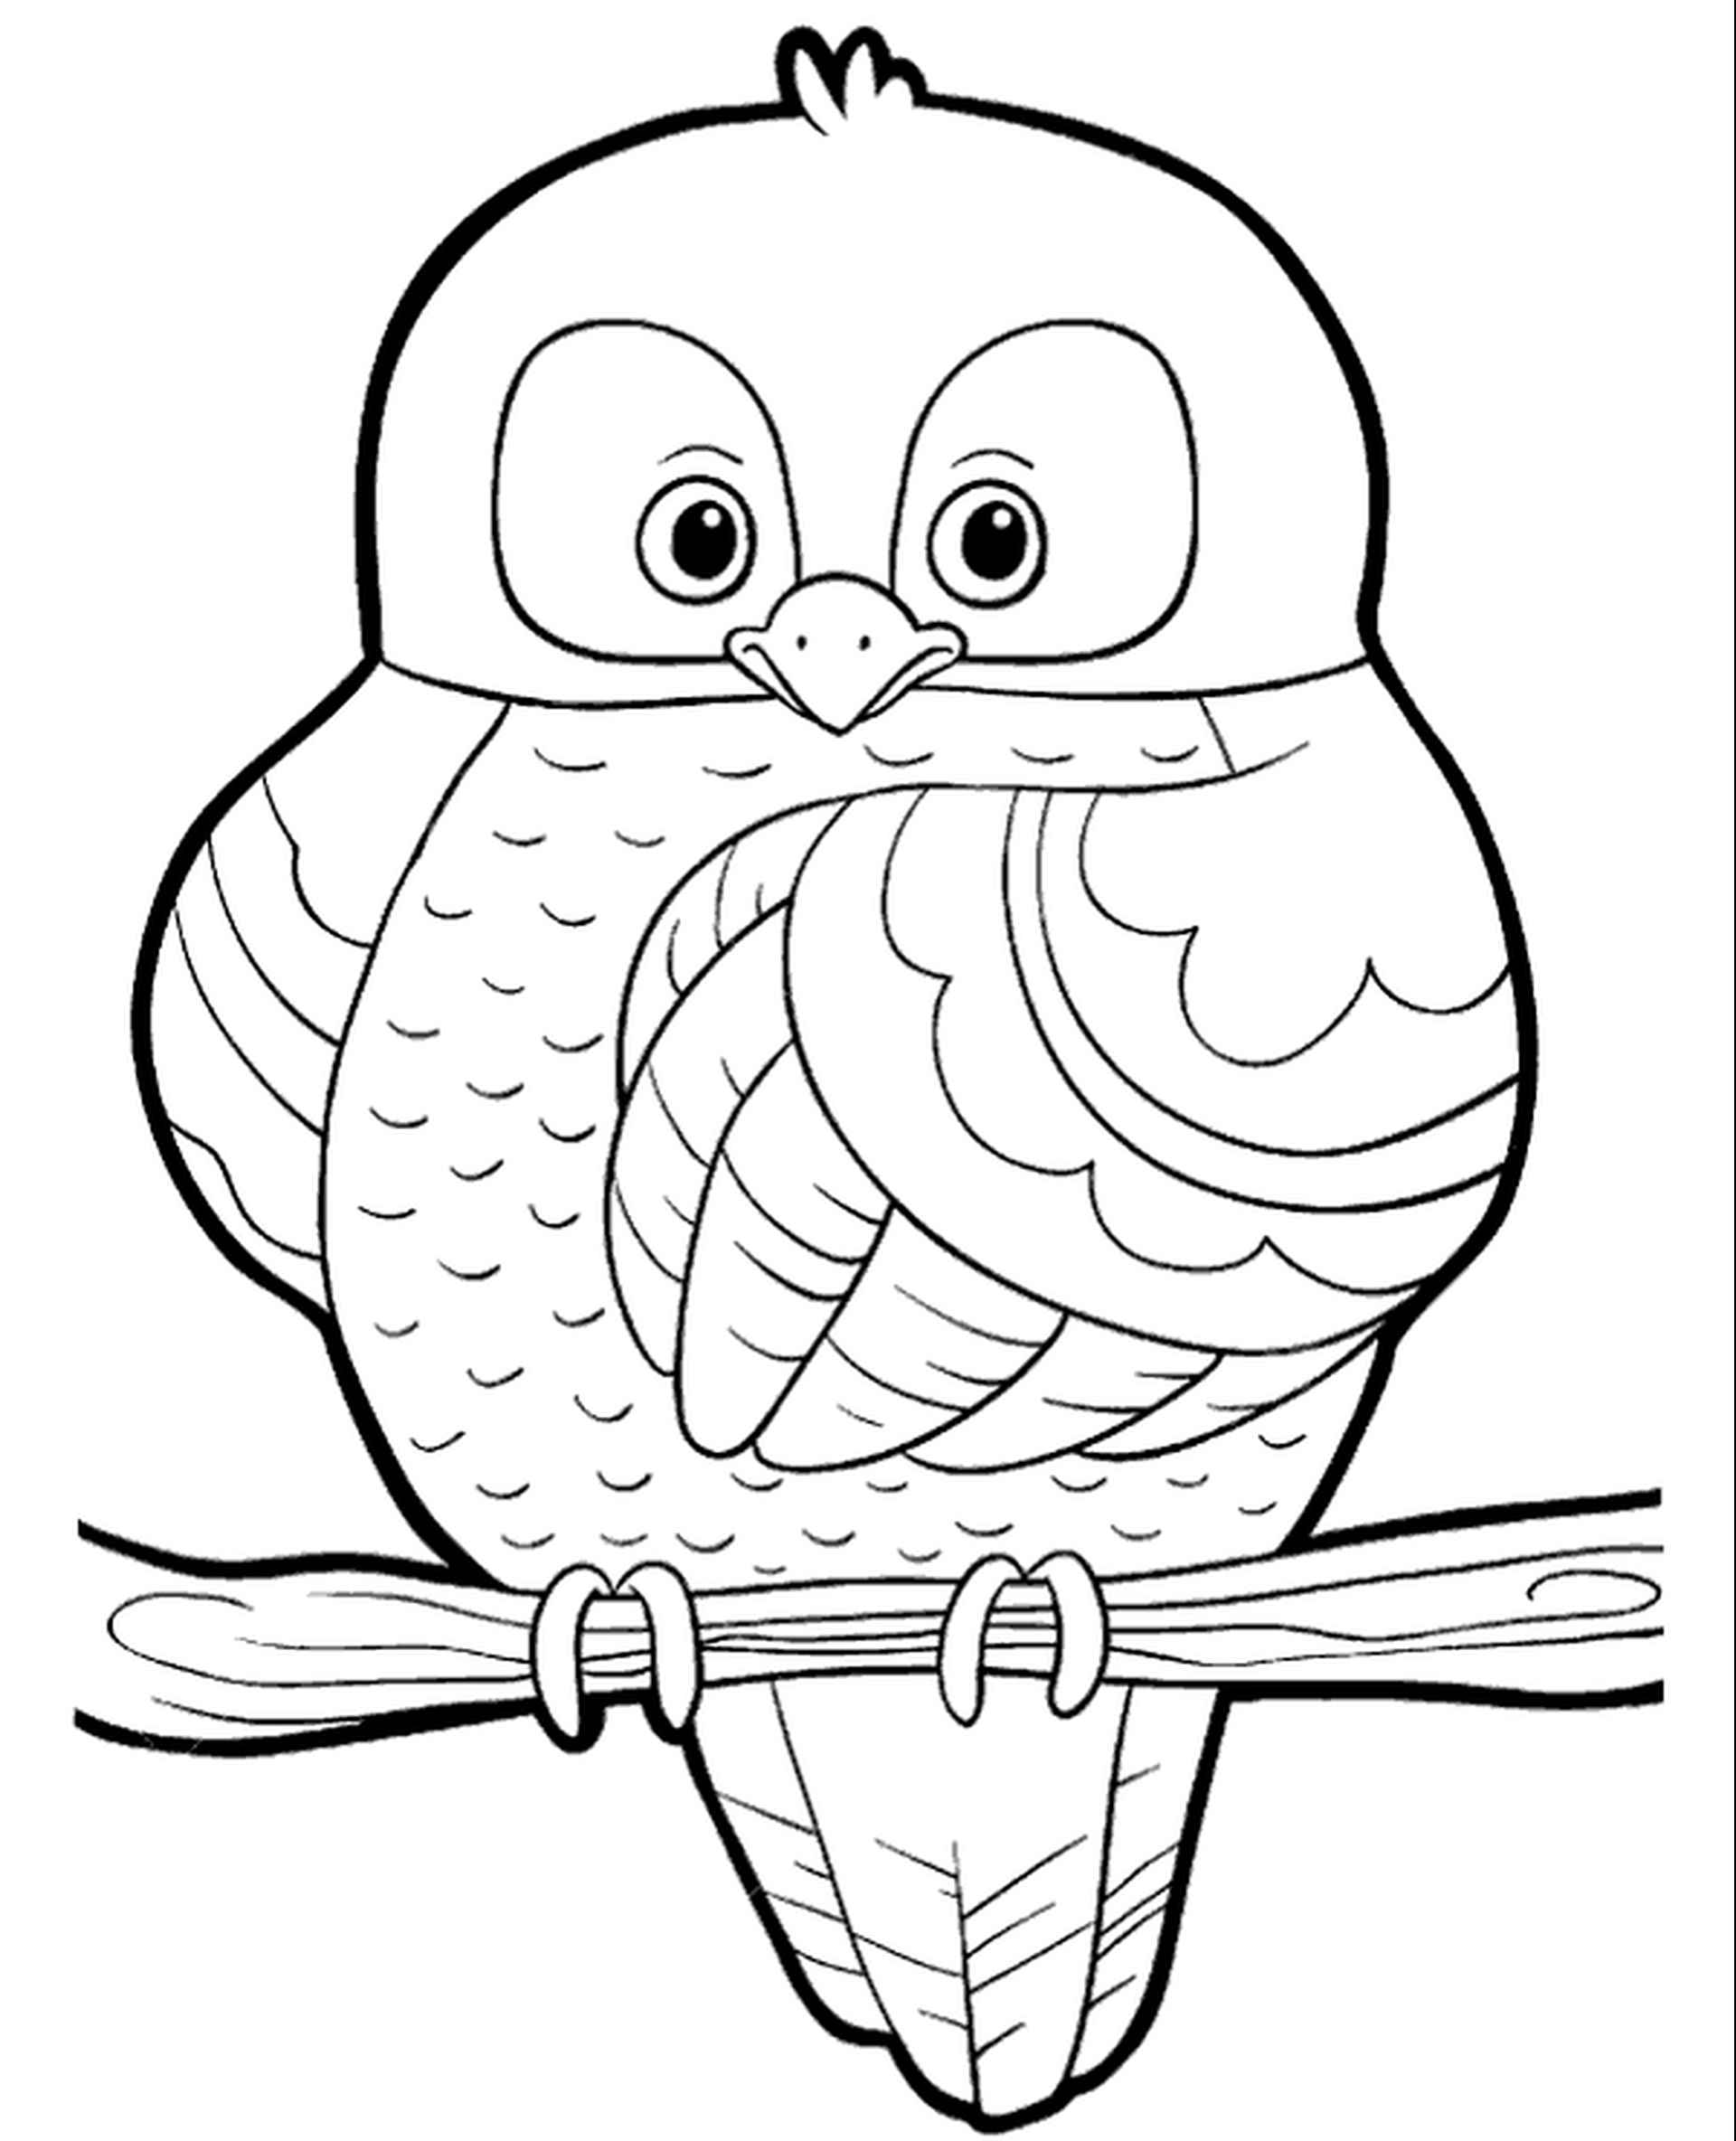 Cute Owl Sitting On The Branch Coloring Sheet